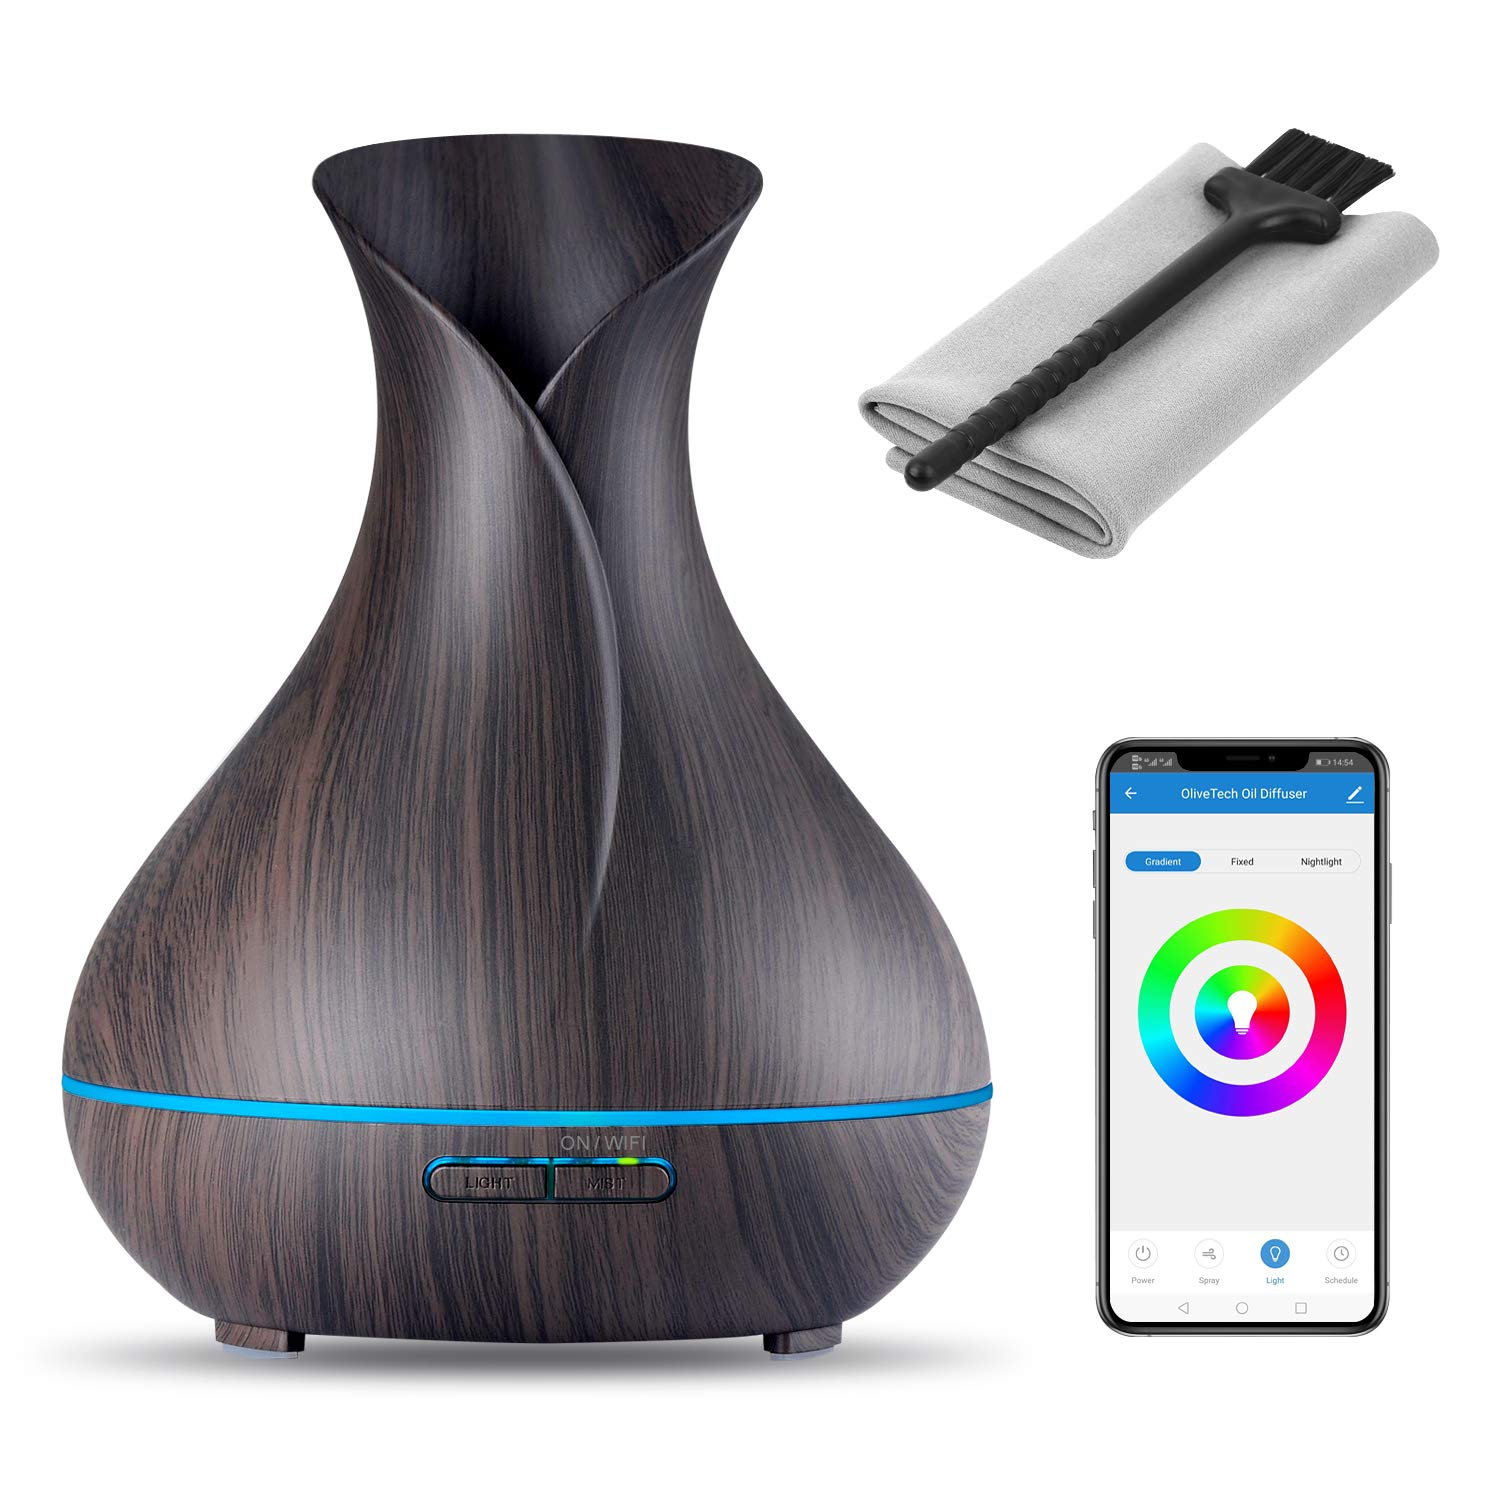 OliveTech Smart WiFi Essential Oil Diffuser,Compatible with Alexa & Google Home,App Control,400ml Dark Wood Grain,Free Cleaning Kit,Color LED Light,Set Schedule/Timer,Auto Shut Off